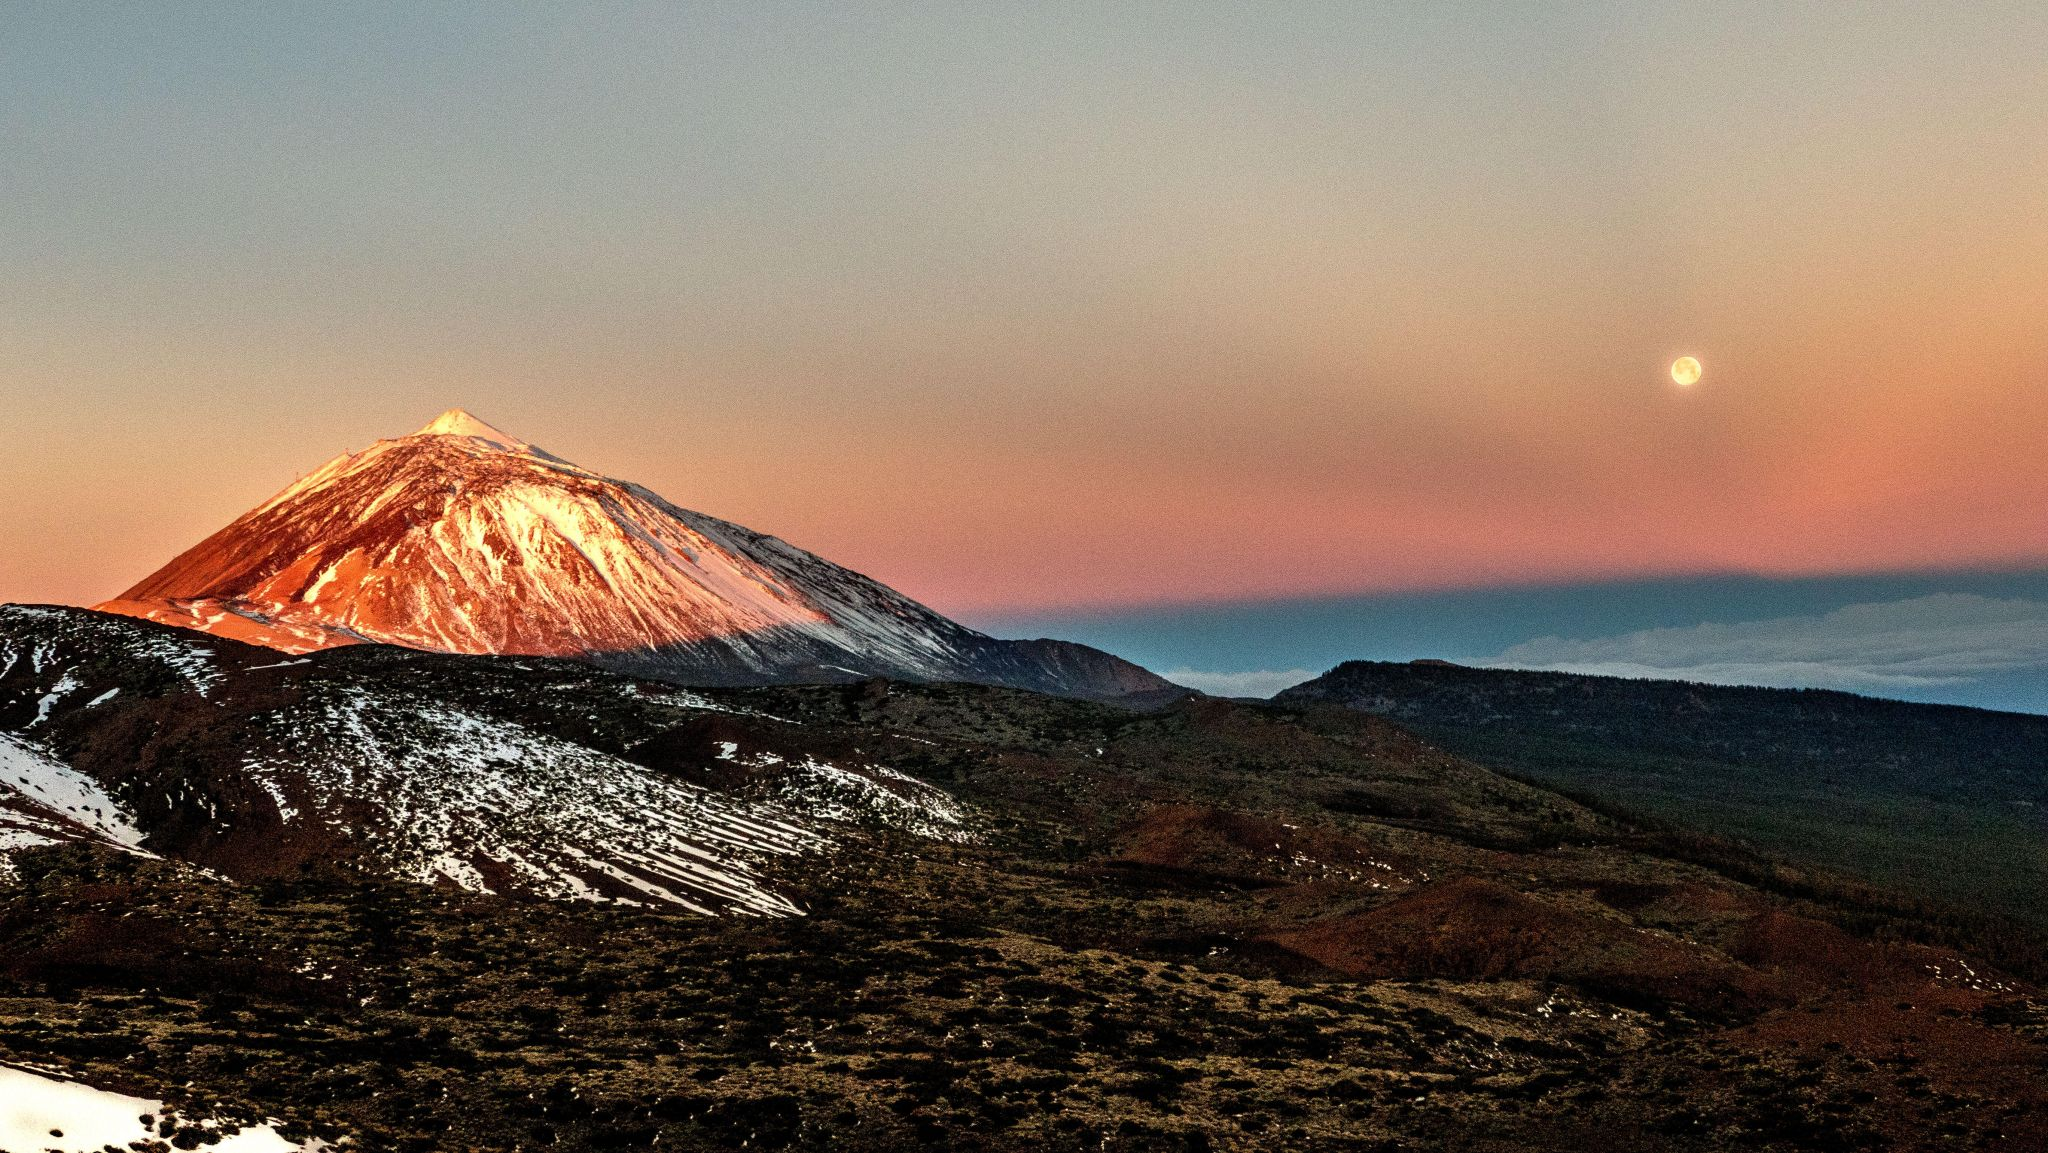 Teide with full moonset, Spain